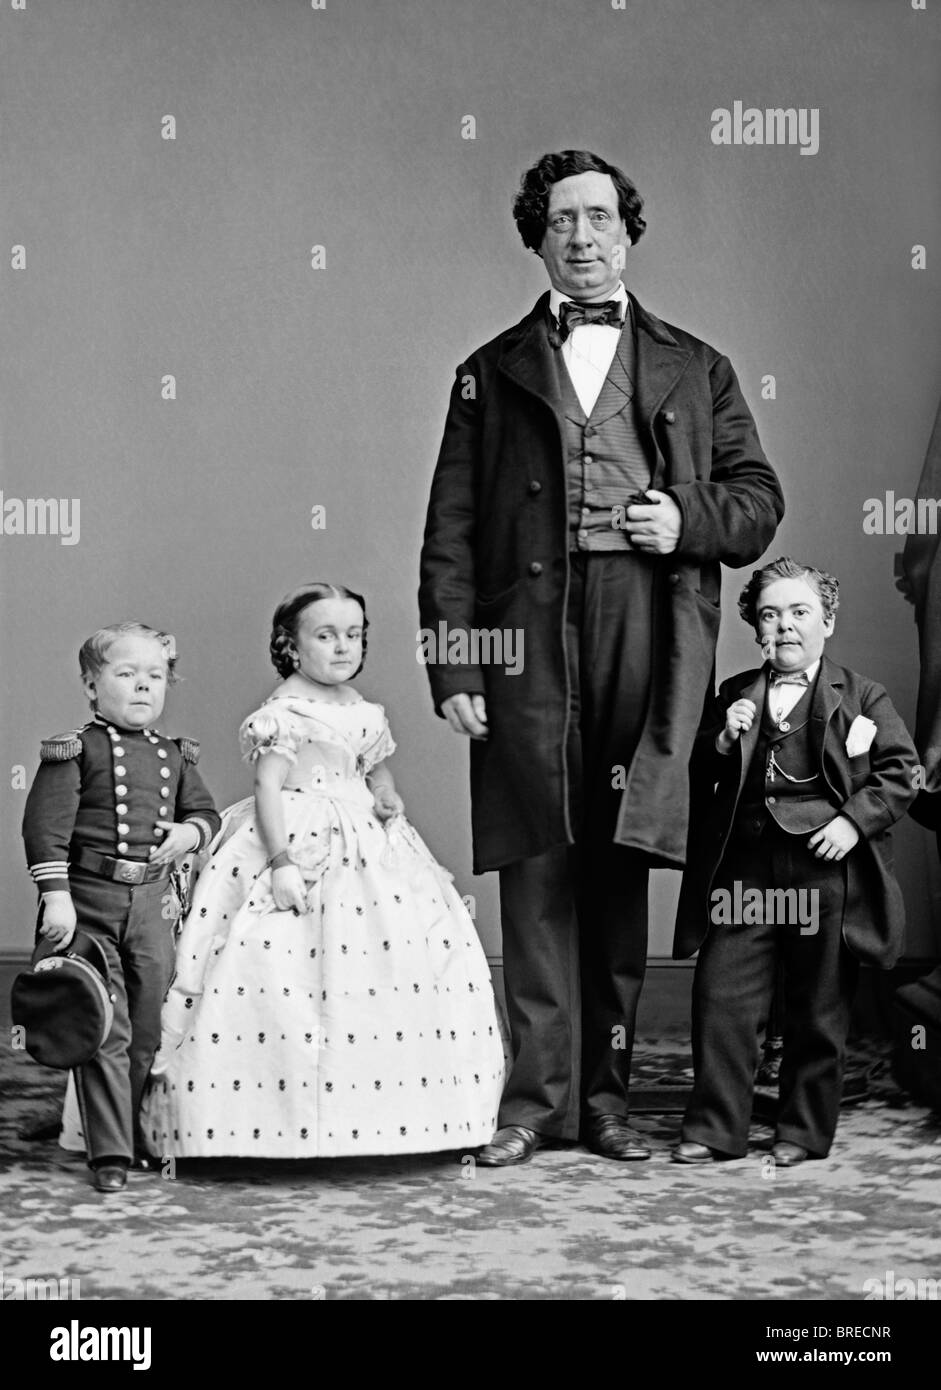 Famous stars of P T Barnum's 19th century shows - Commodore Nutt, Lavinia Warren, unidentified 'giant' - Stock Image